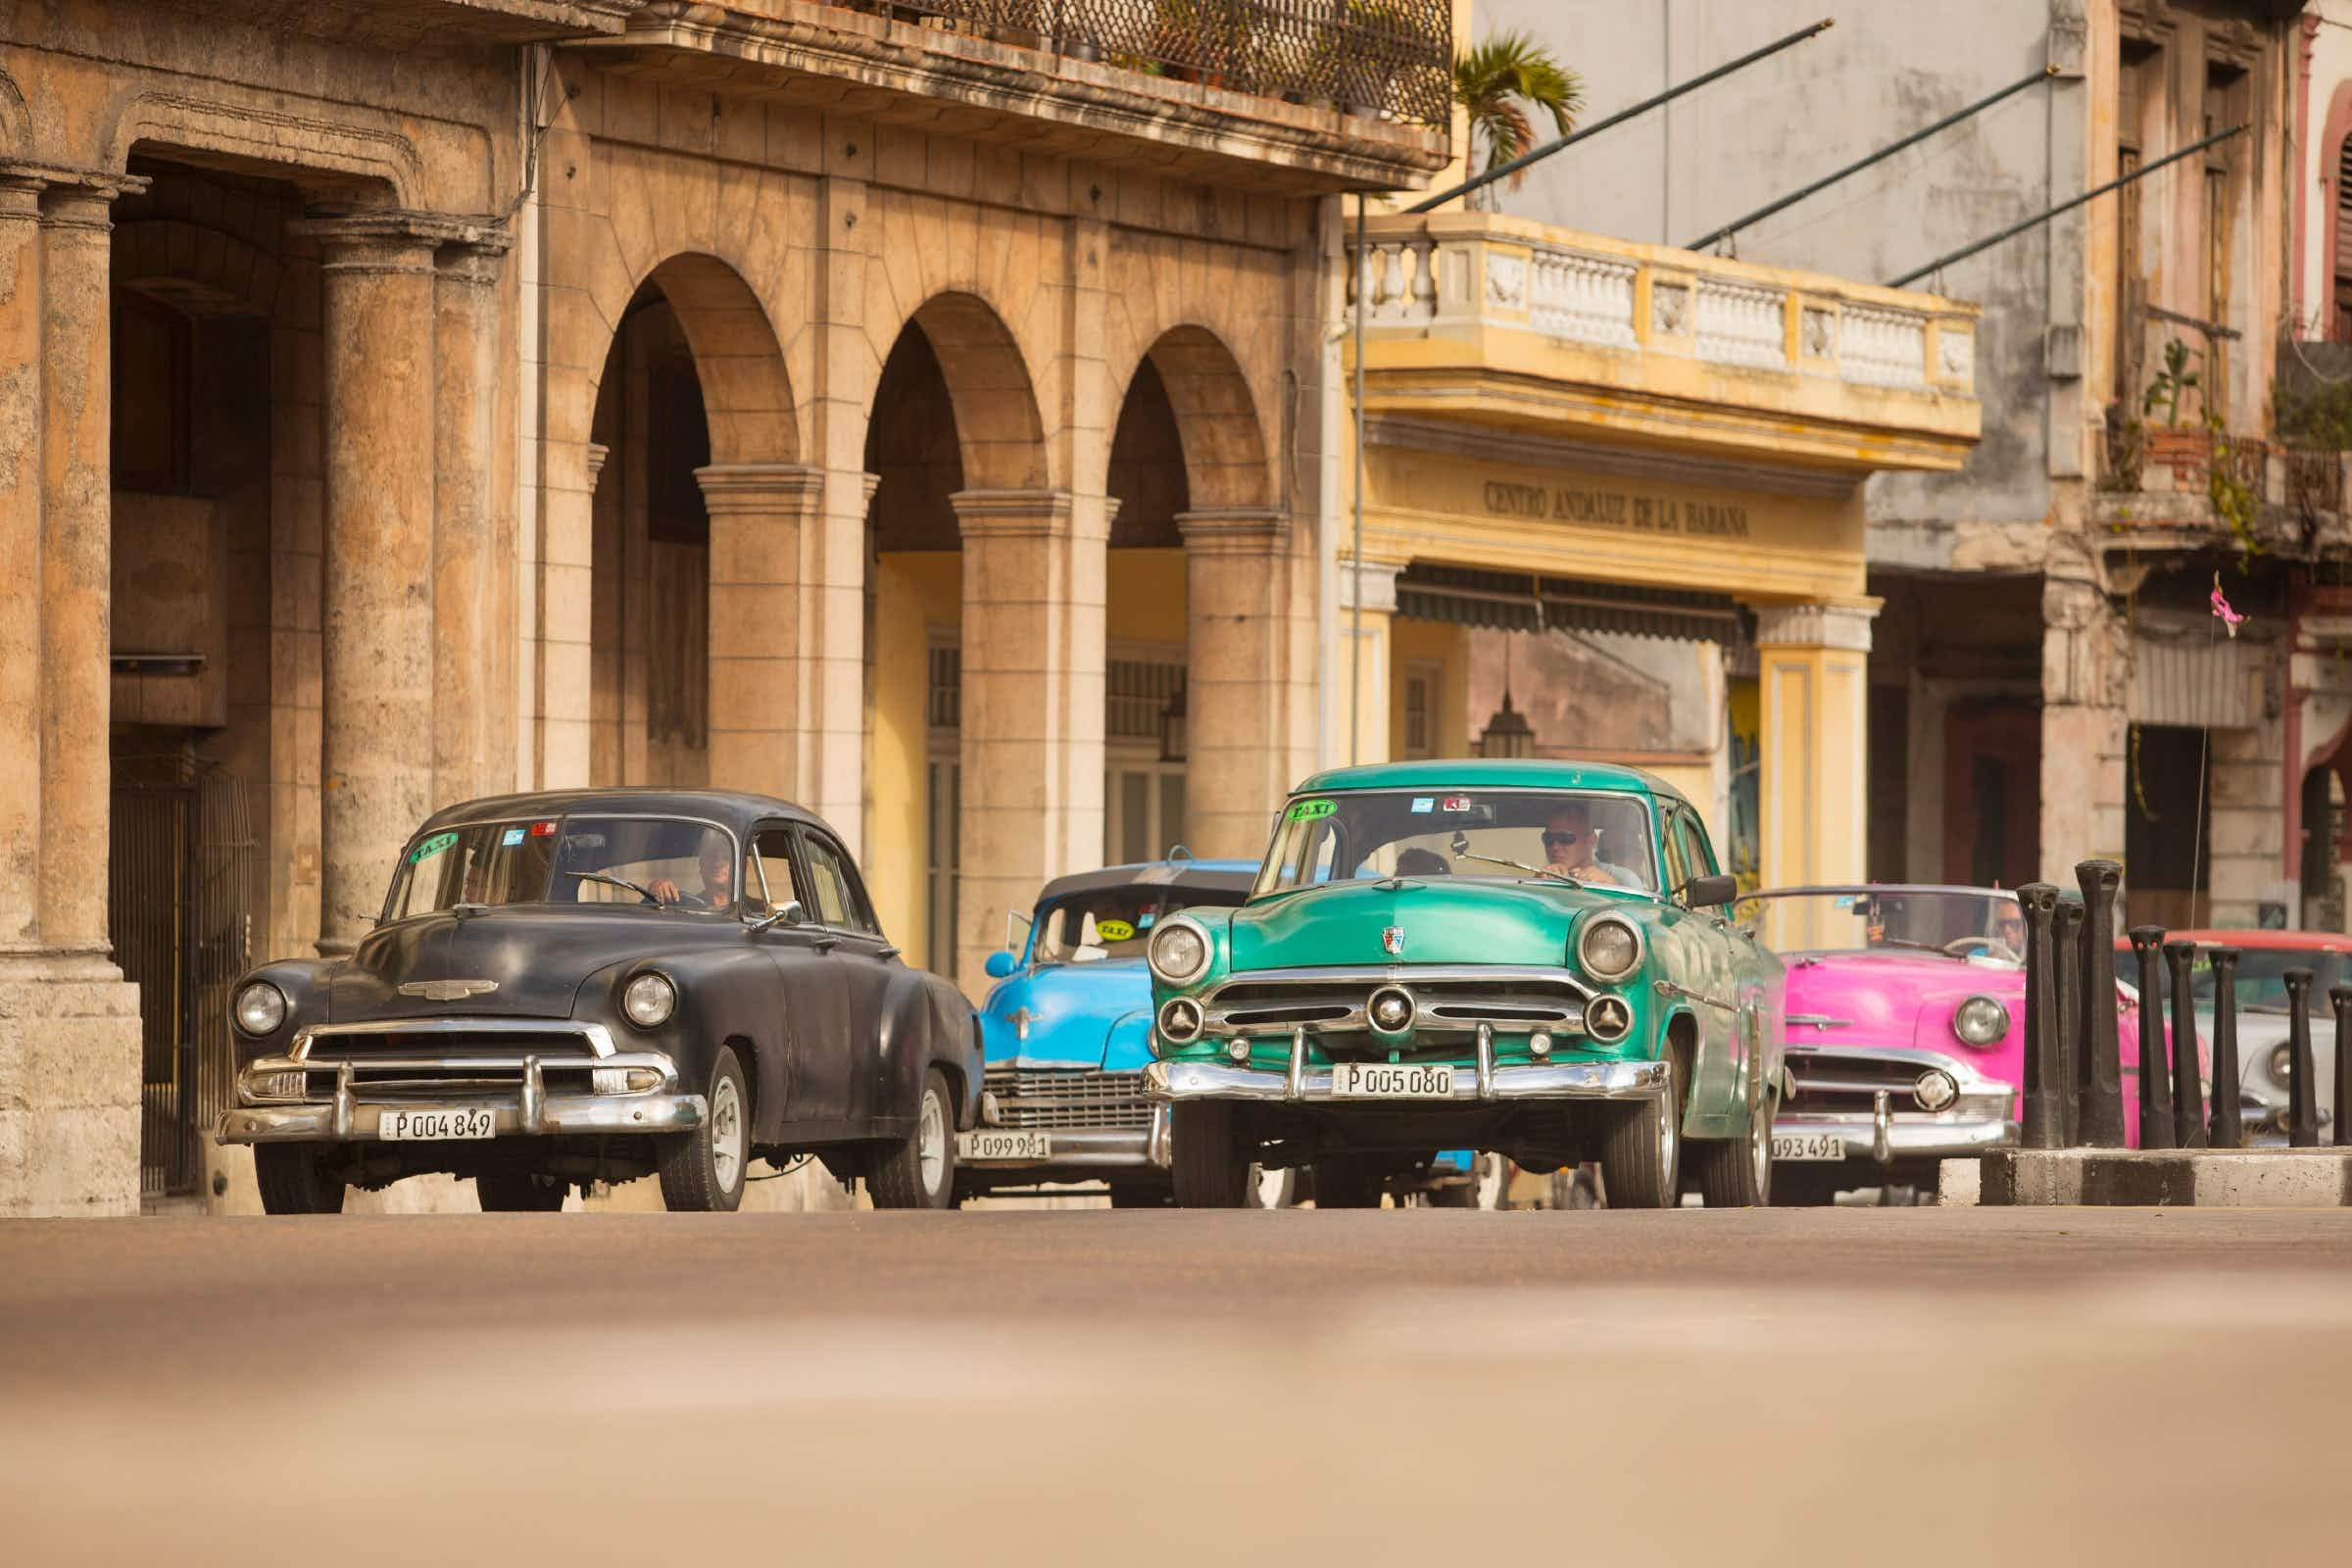 Step back in time to 1950s Havana with a new tour from the Mob Museum